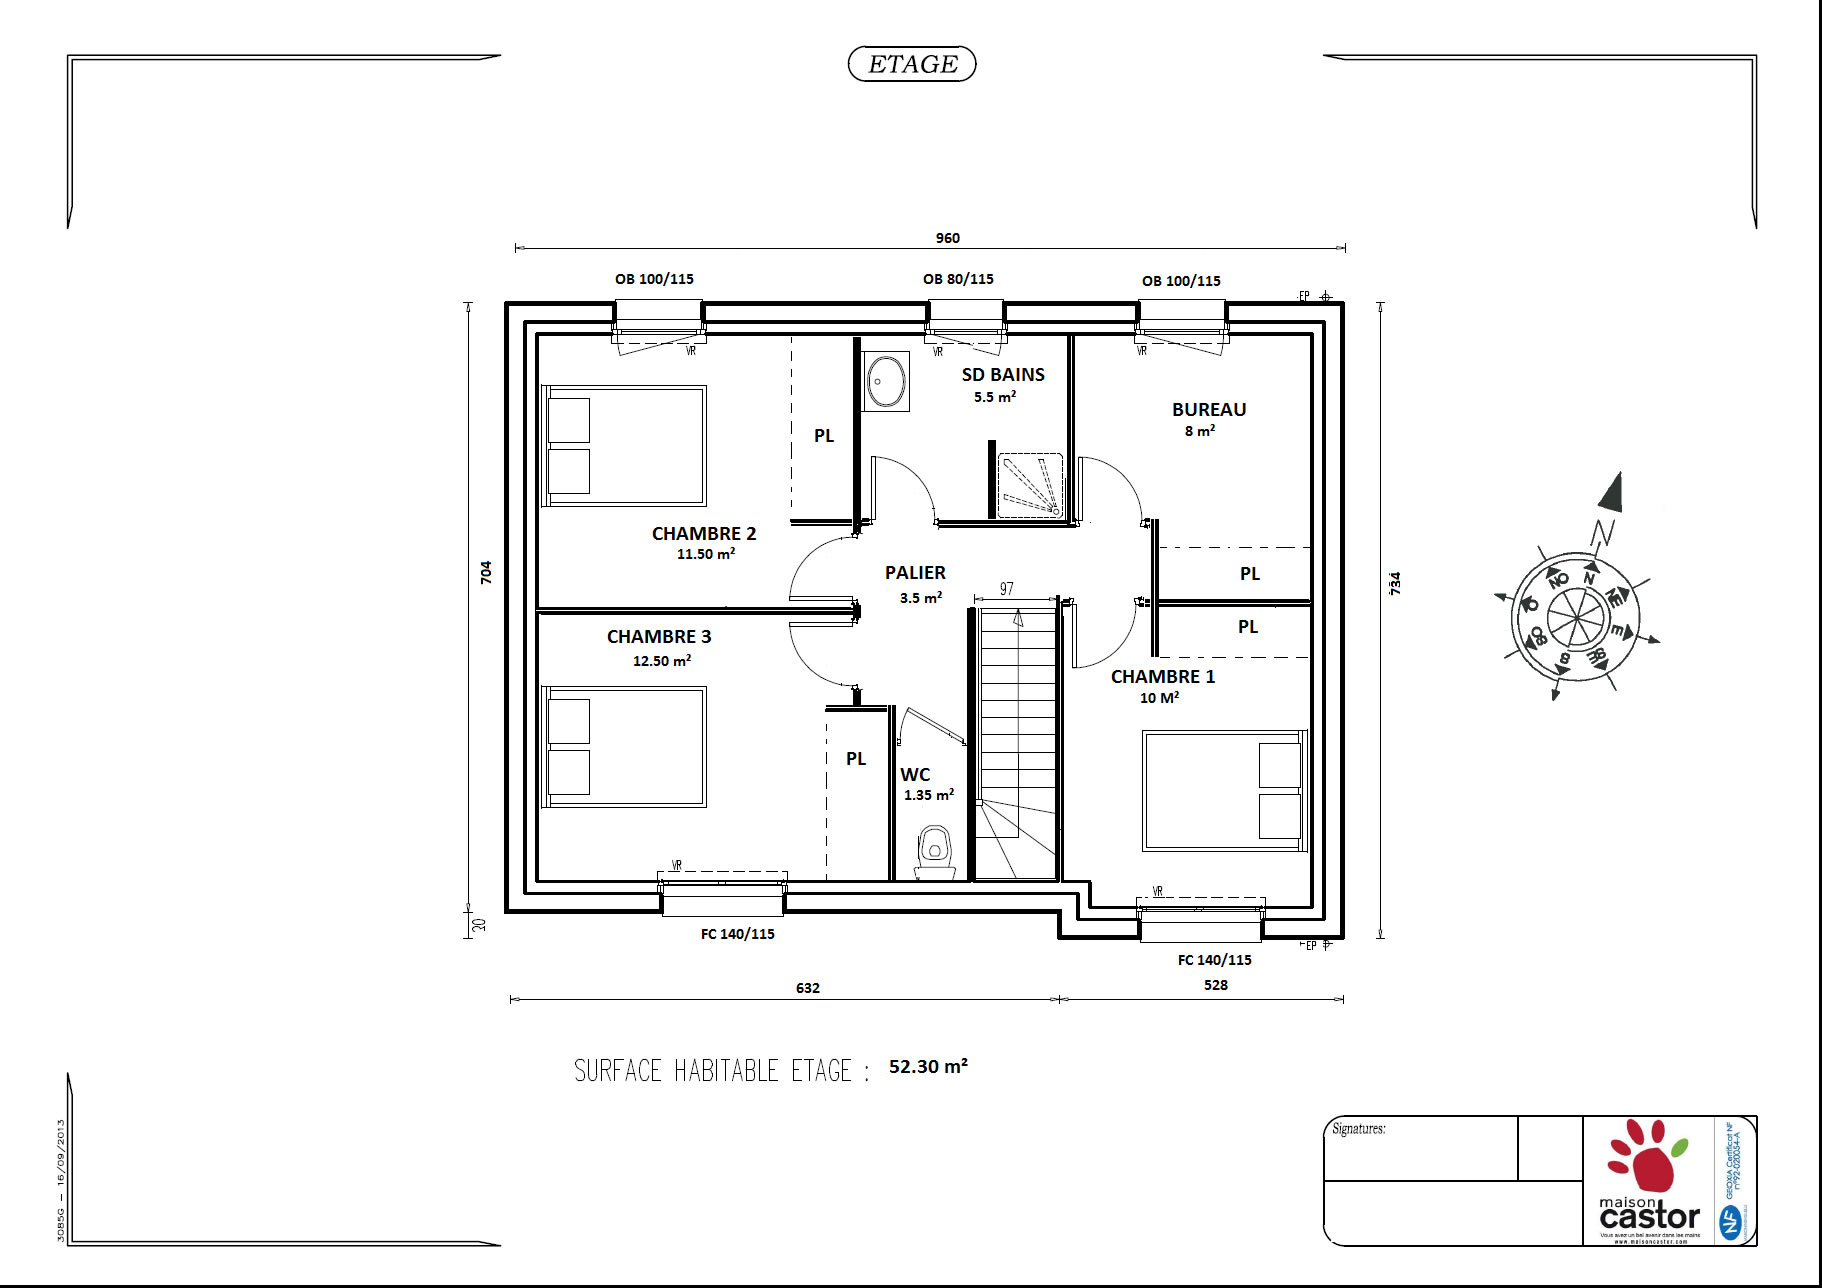 Plan maison r 1 de 92m2 13 messages for Plan de maison de 90m2